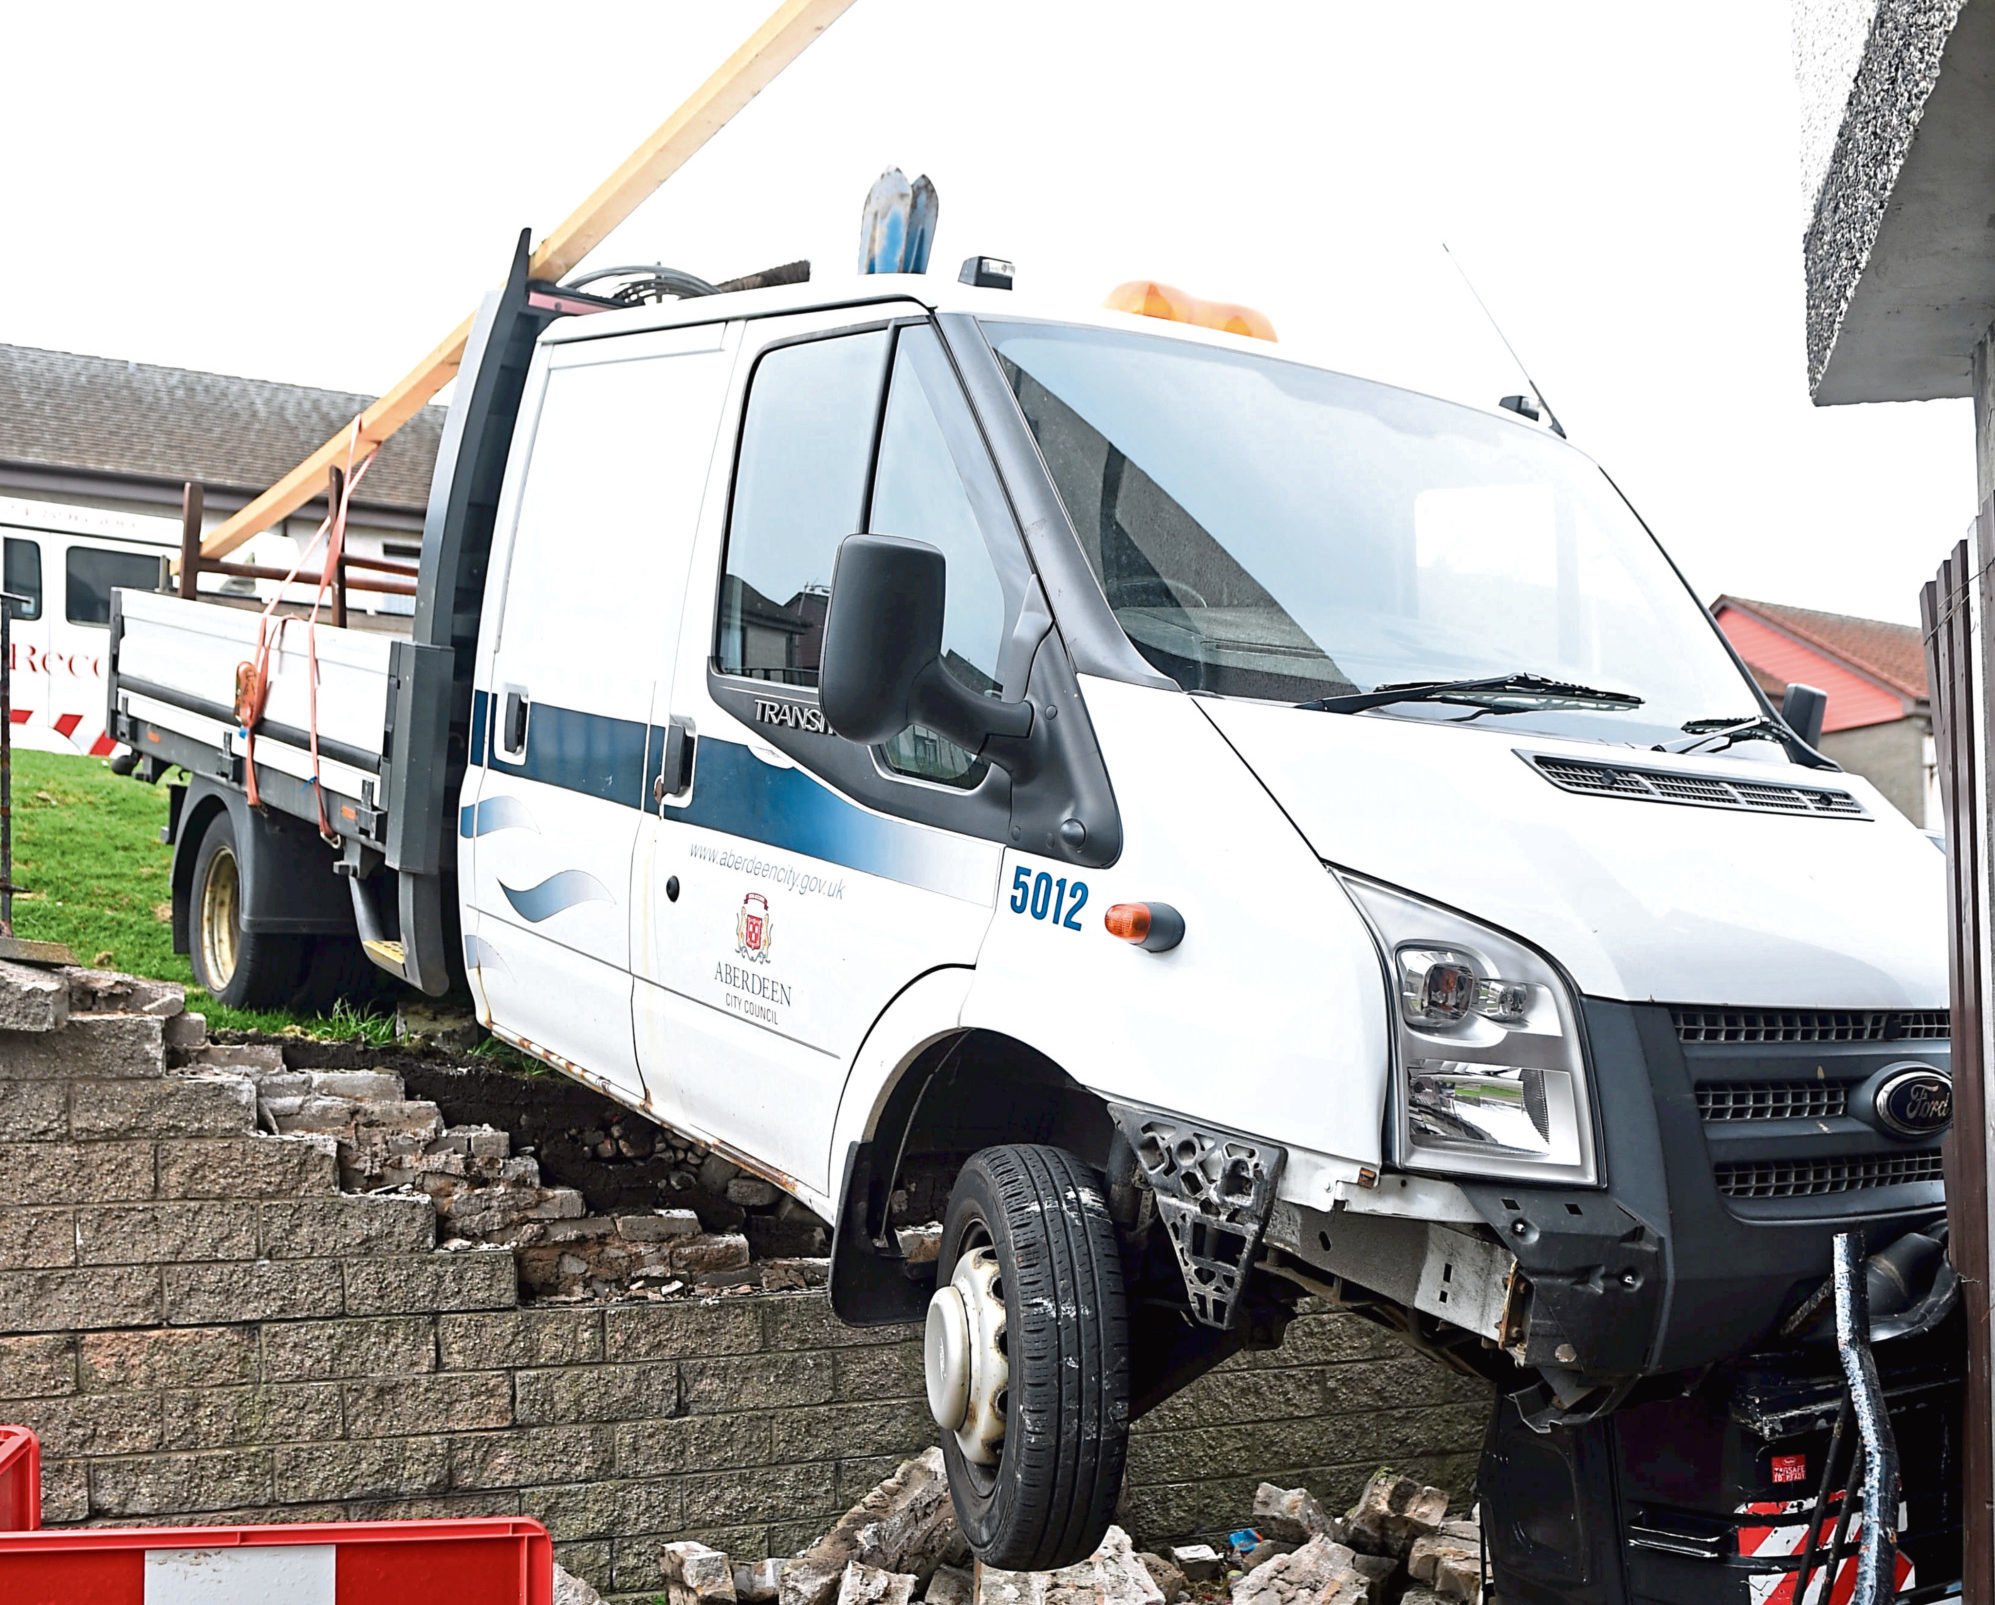 The van crashed through the wall in April